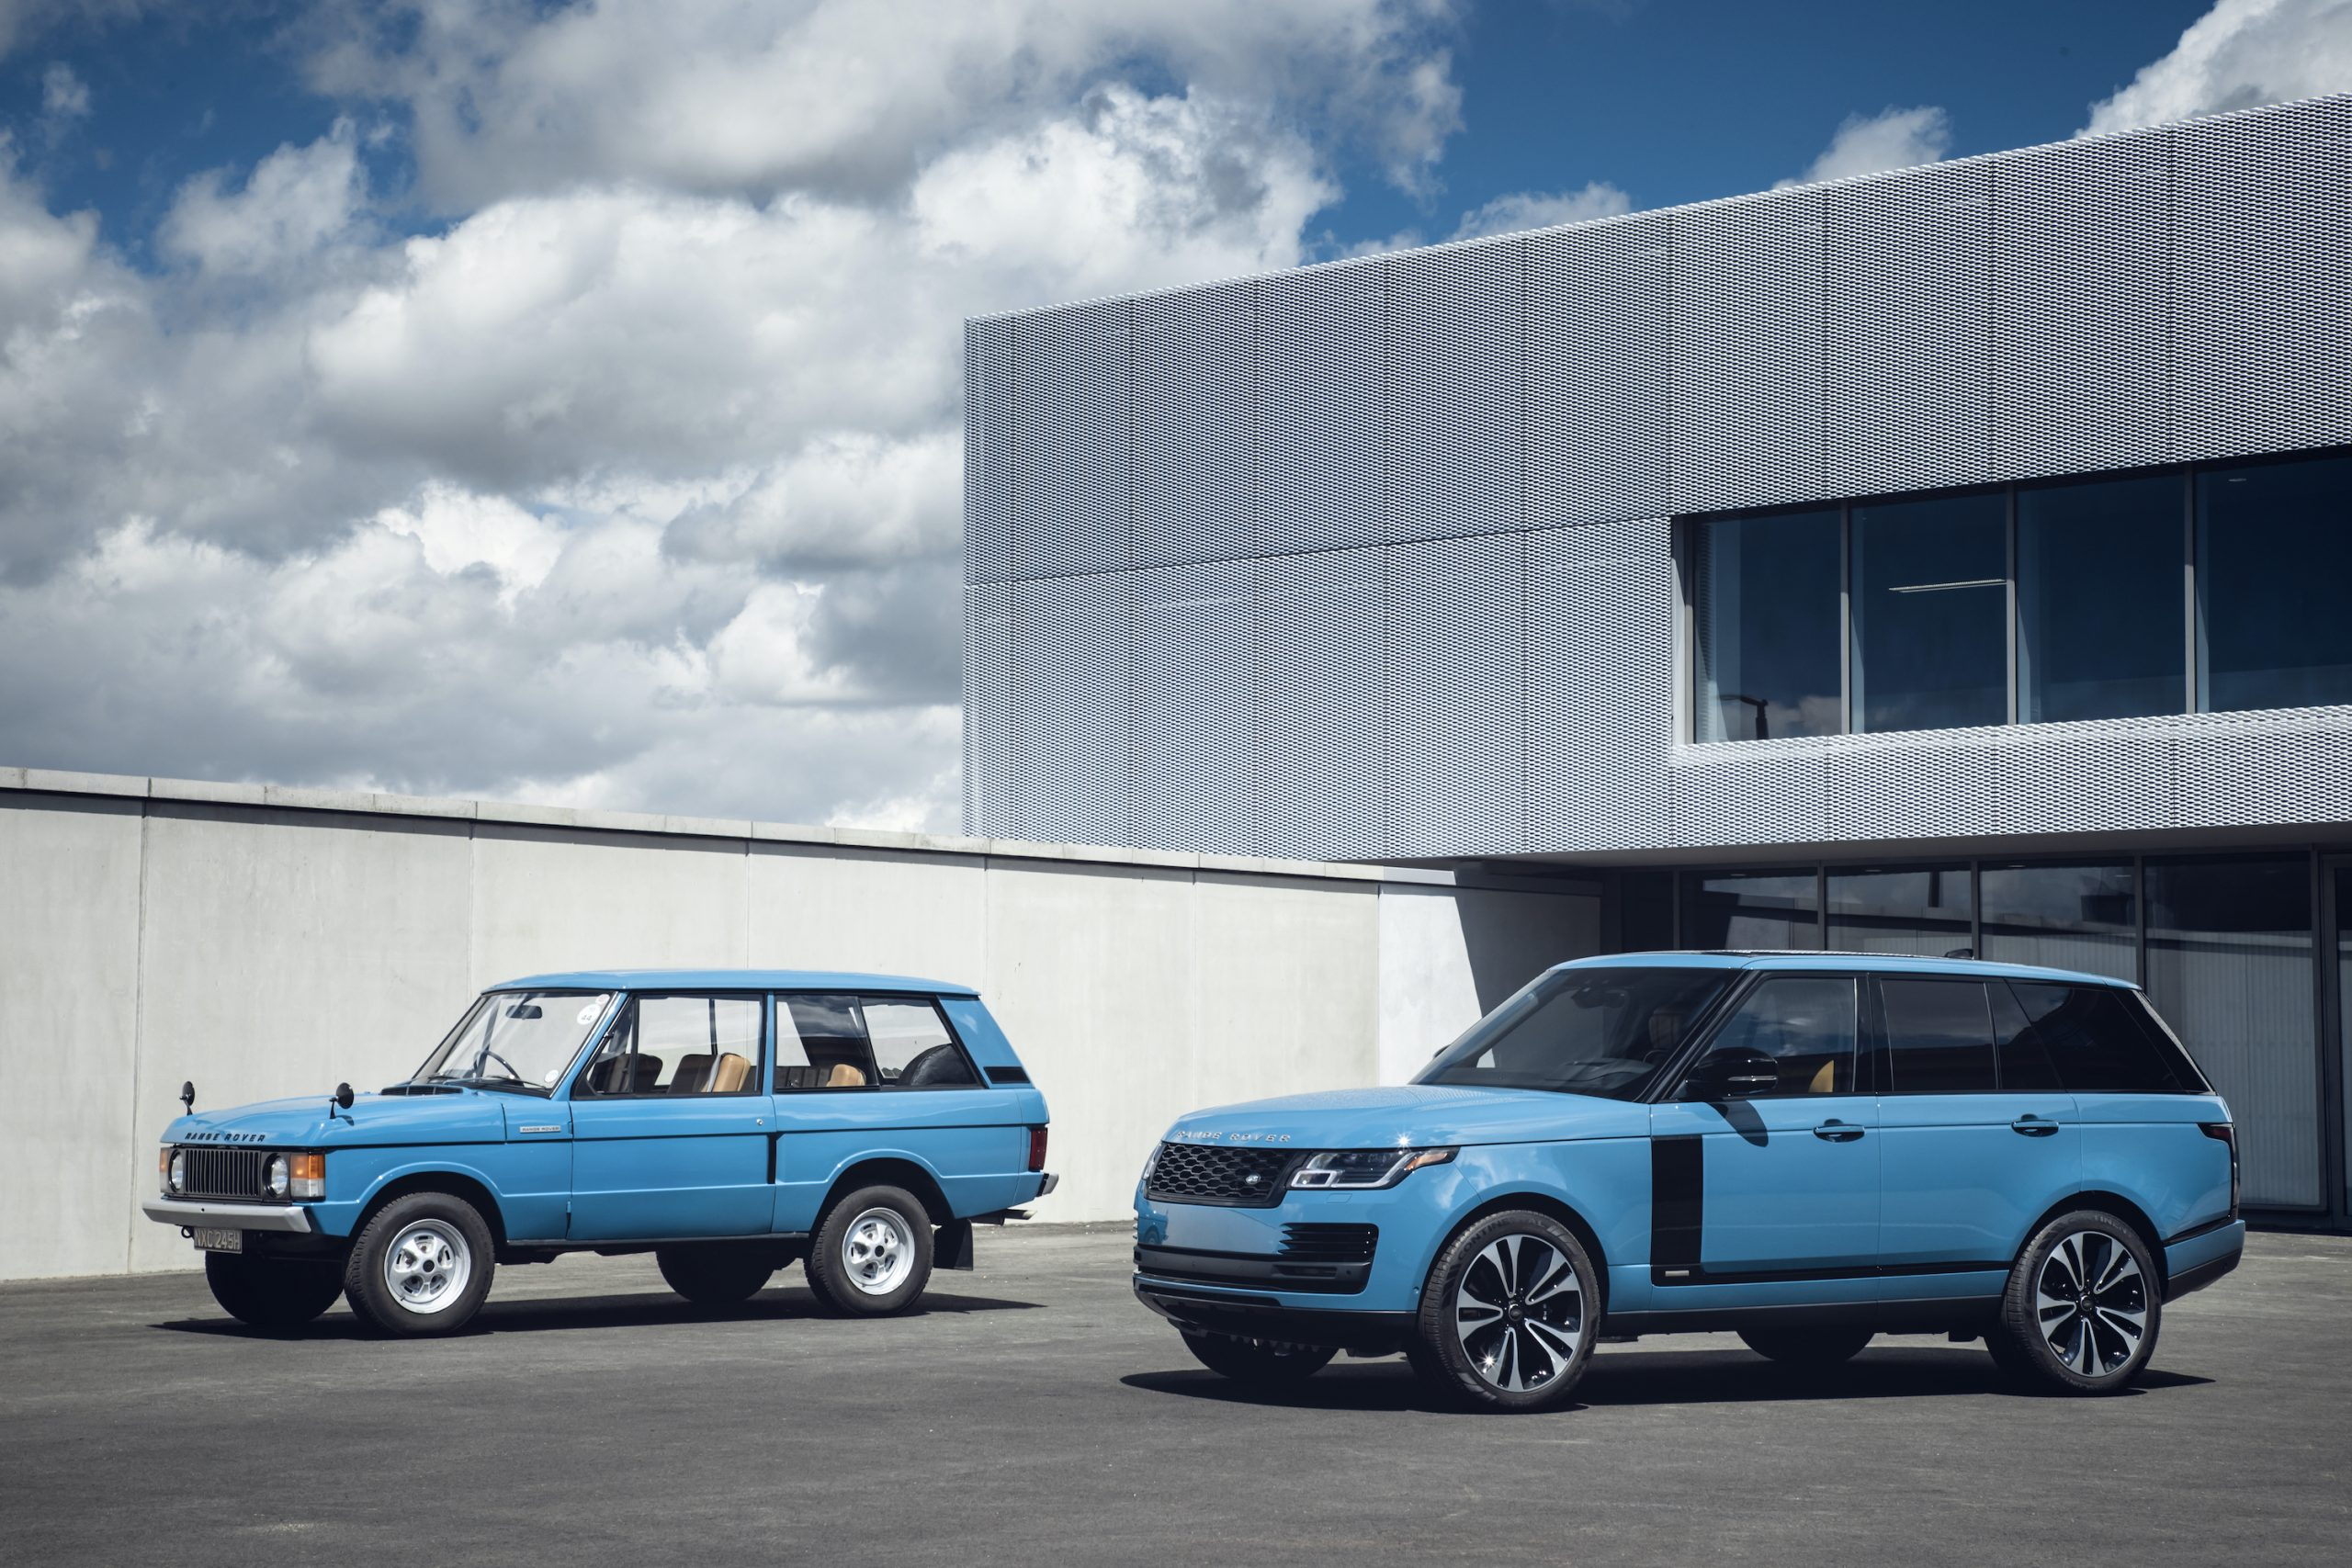 Range Rover New And Classic Front Three-Quarter